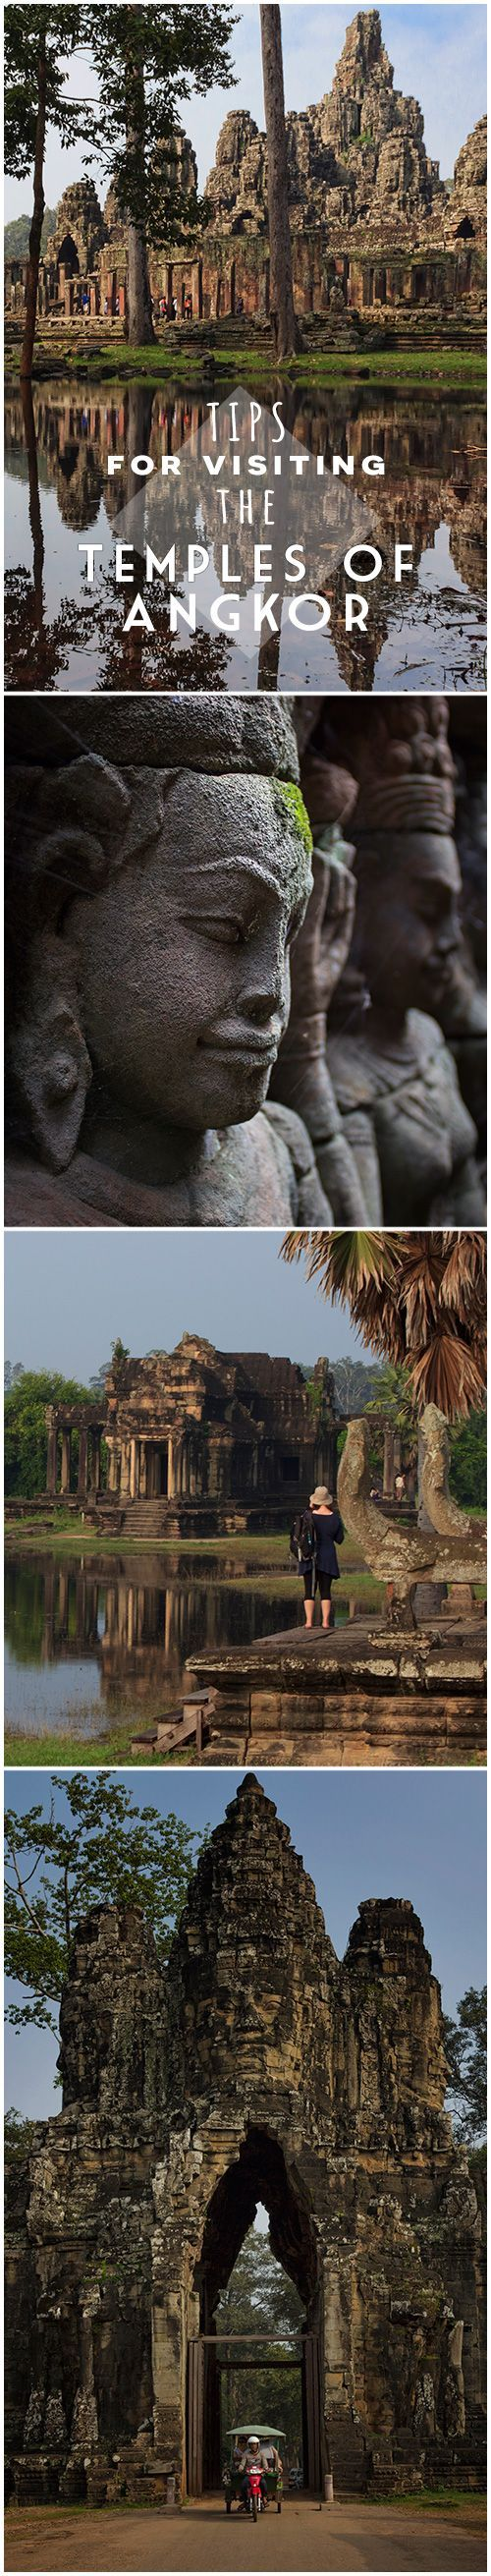 Tips and suggestions for planning at visit to the Temples of Angkor, Cambodia.